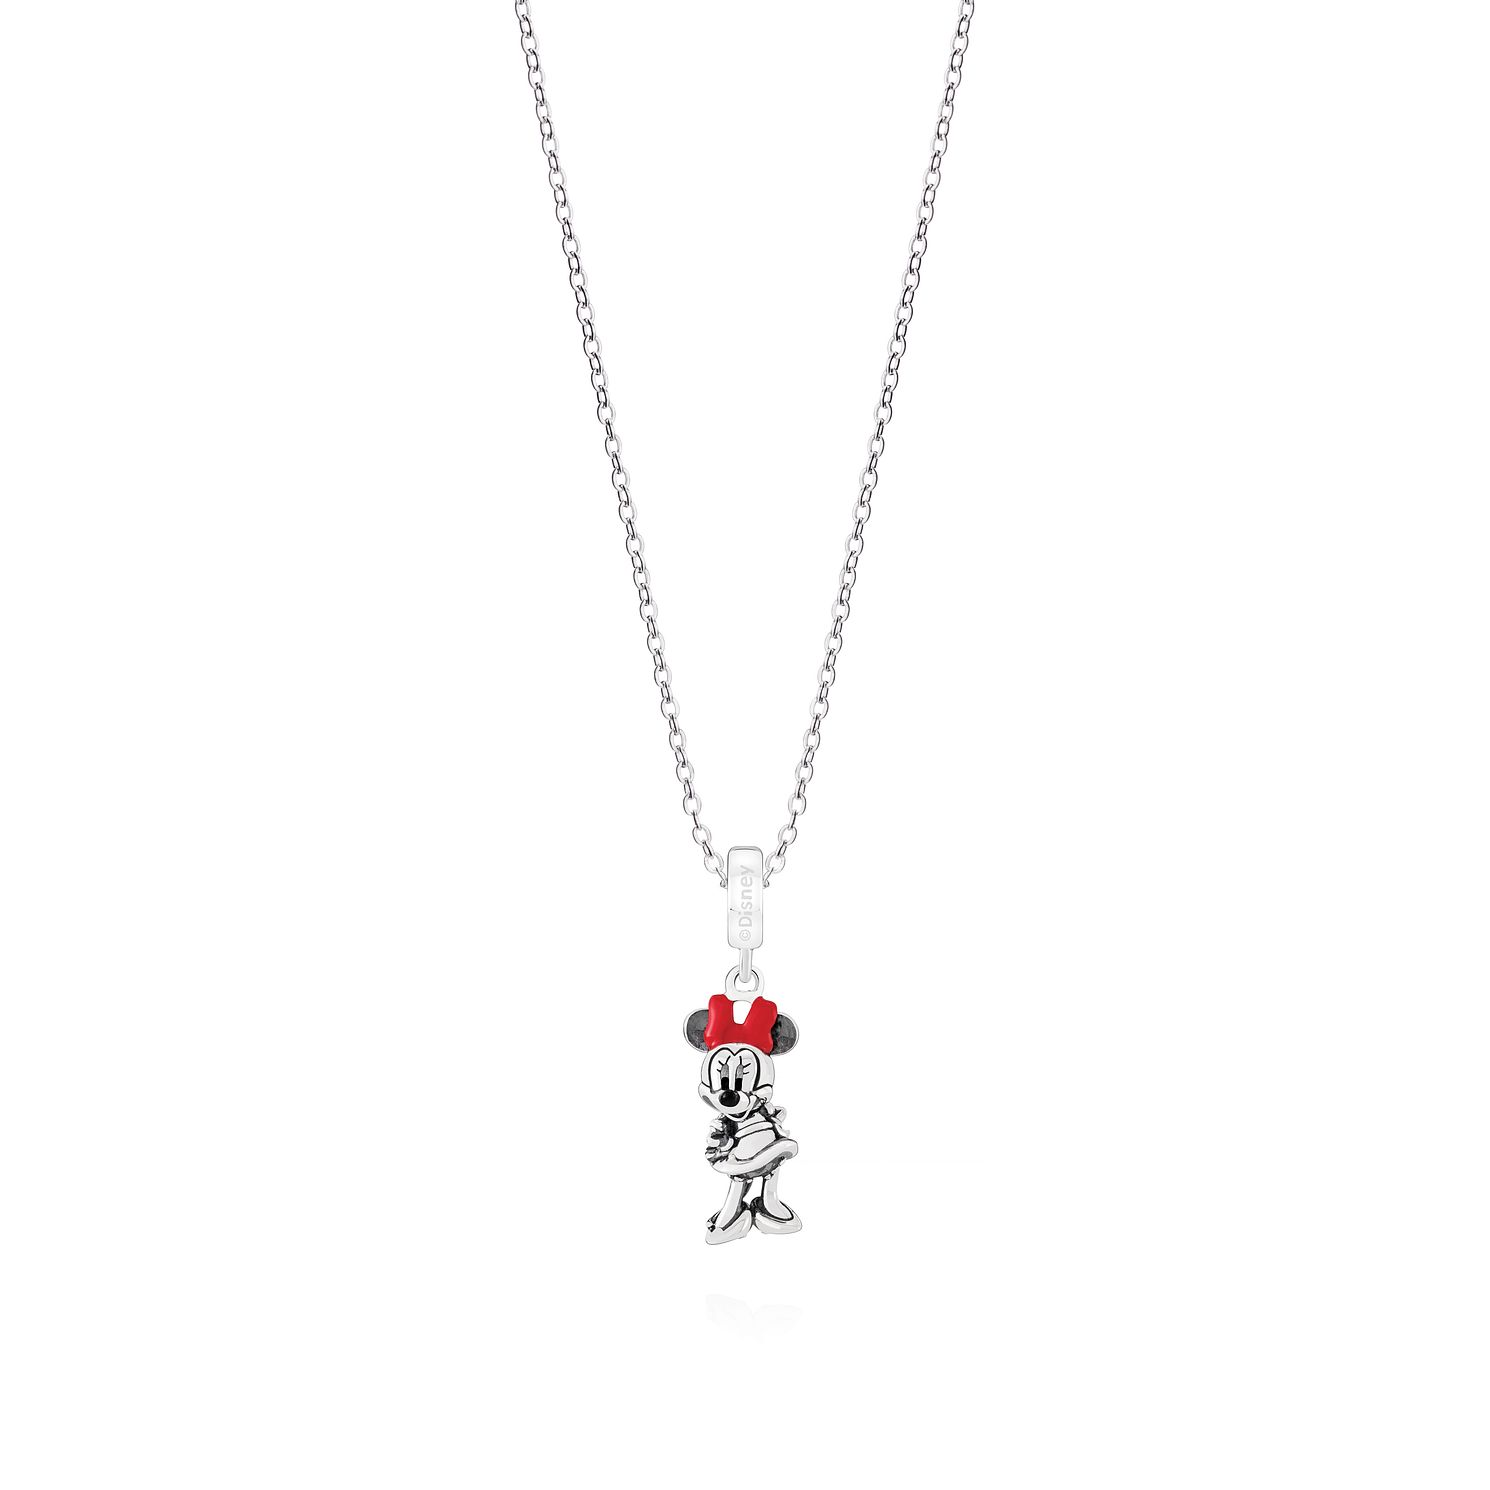 Chamilia Disney Sterling Silver Minnie Mouse Necklace - Product number 8128472